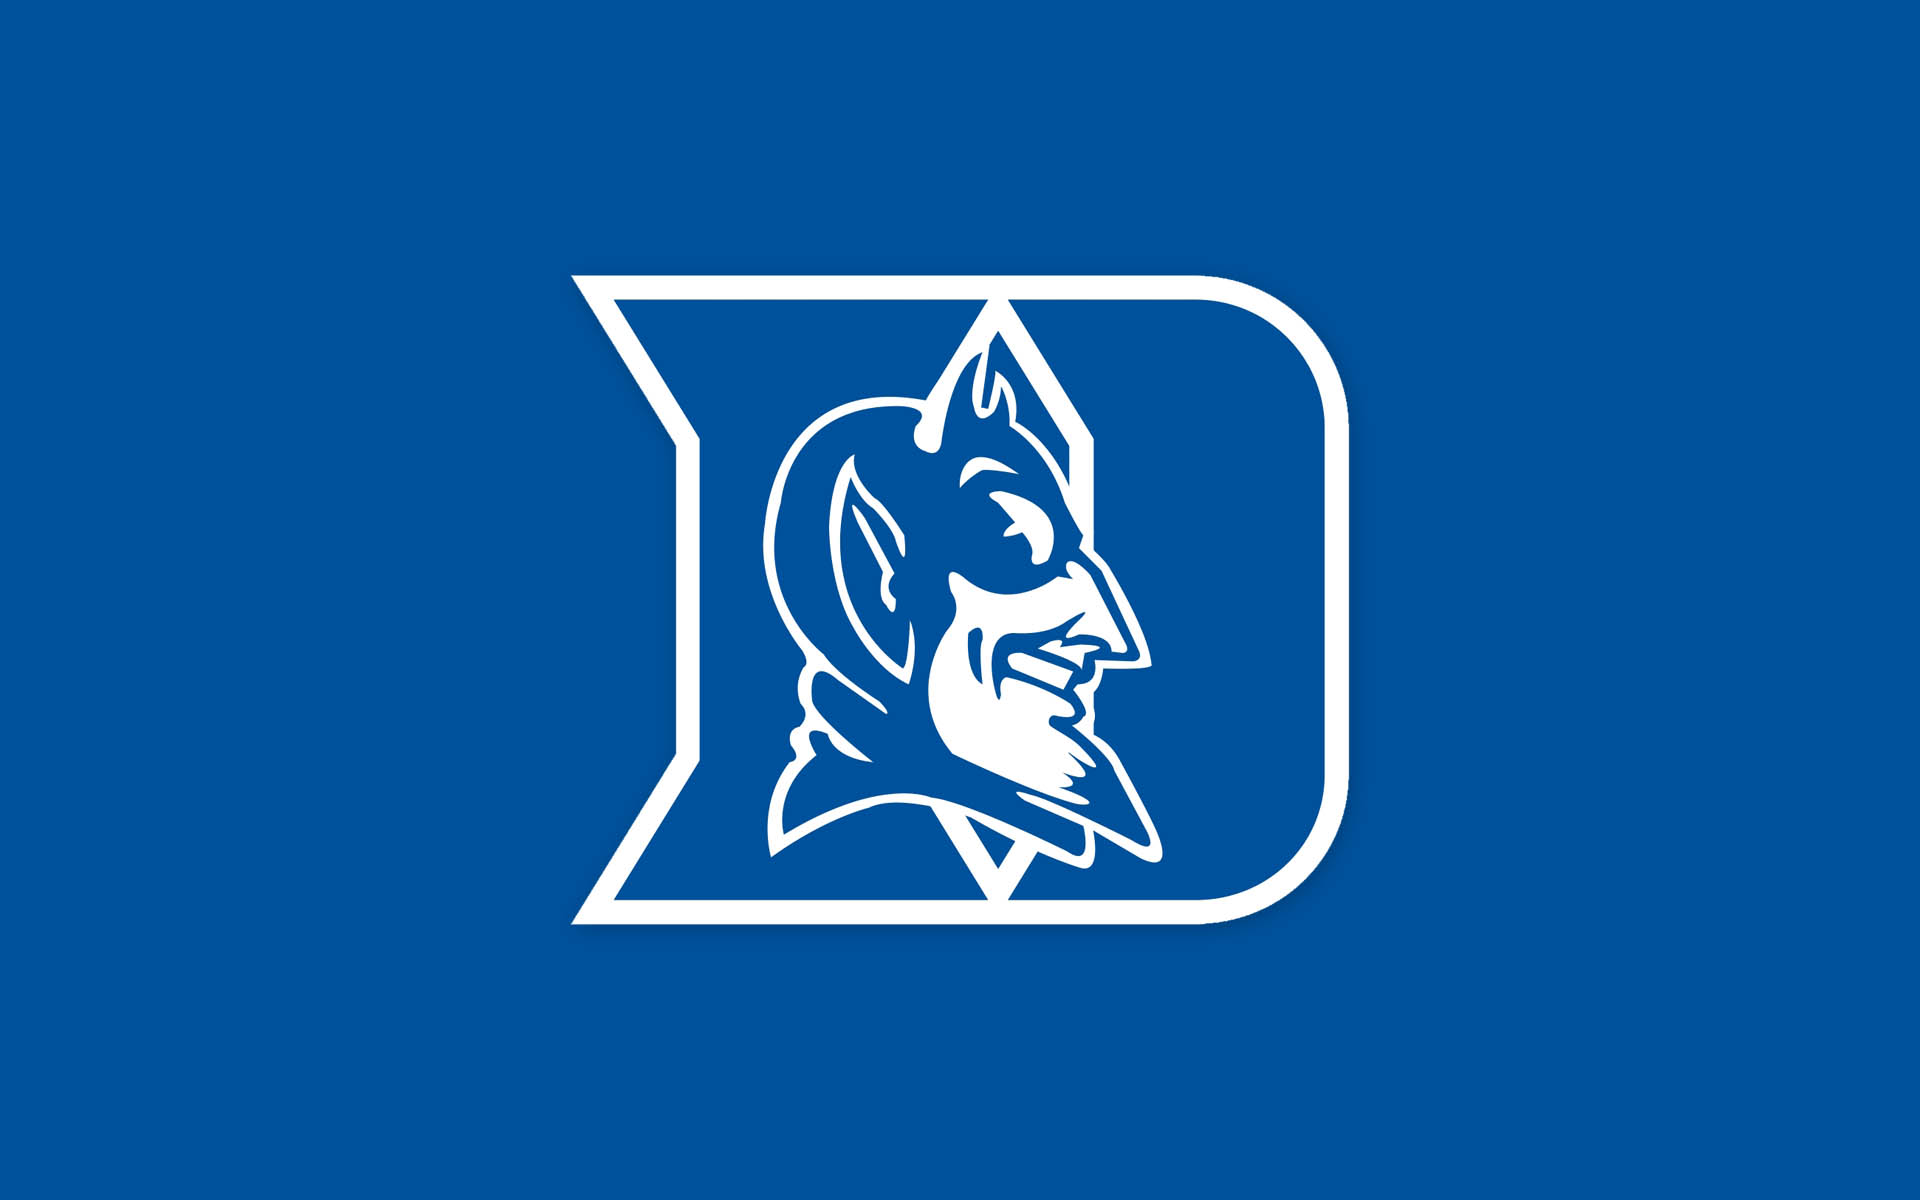 Duke University Wallpapers - WallpaperSafari